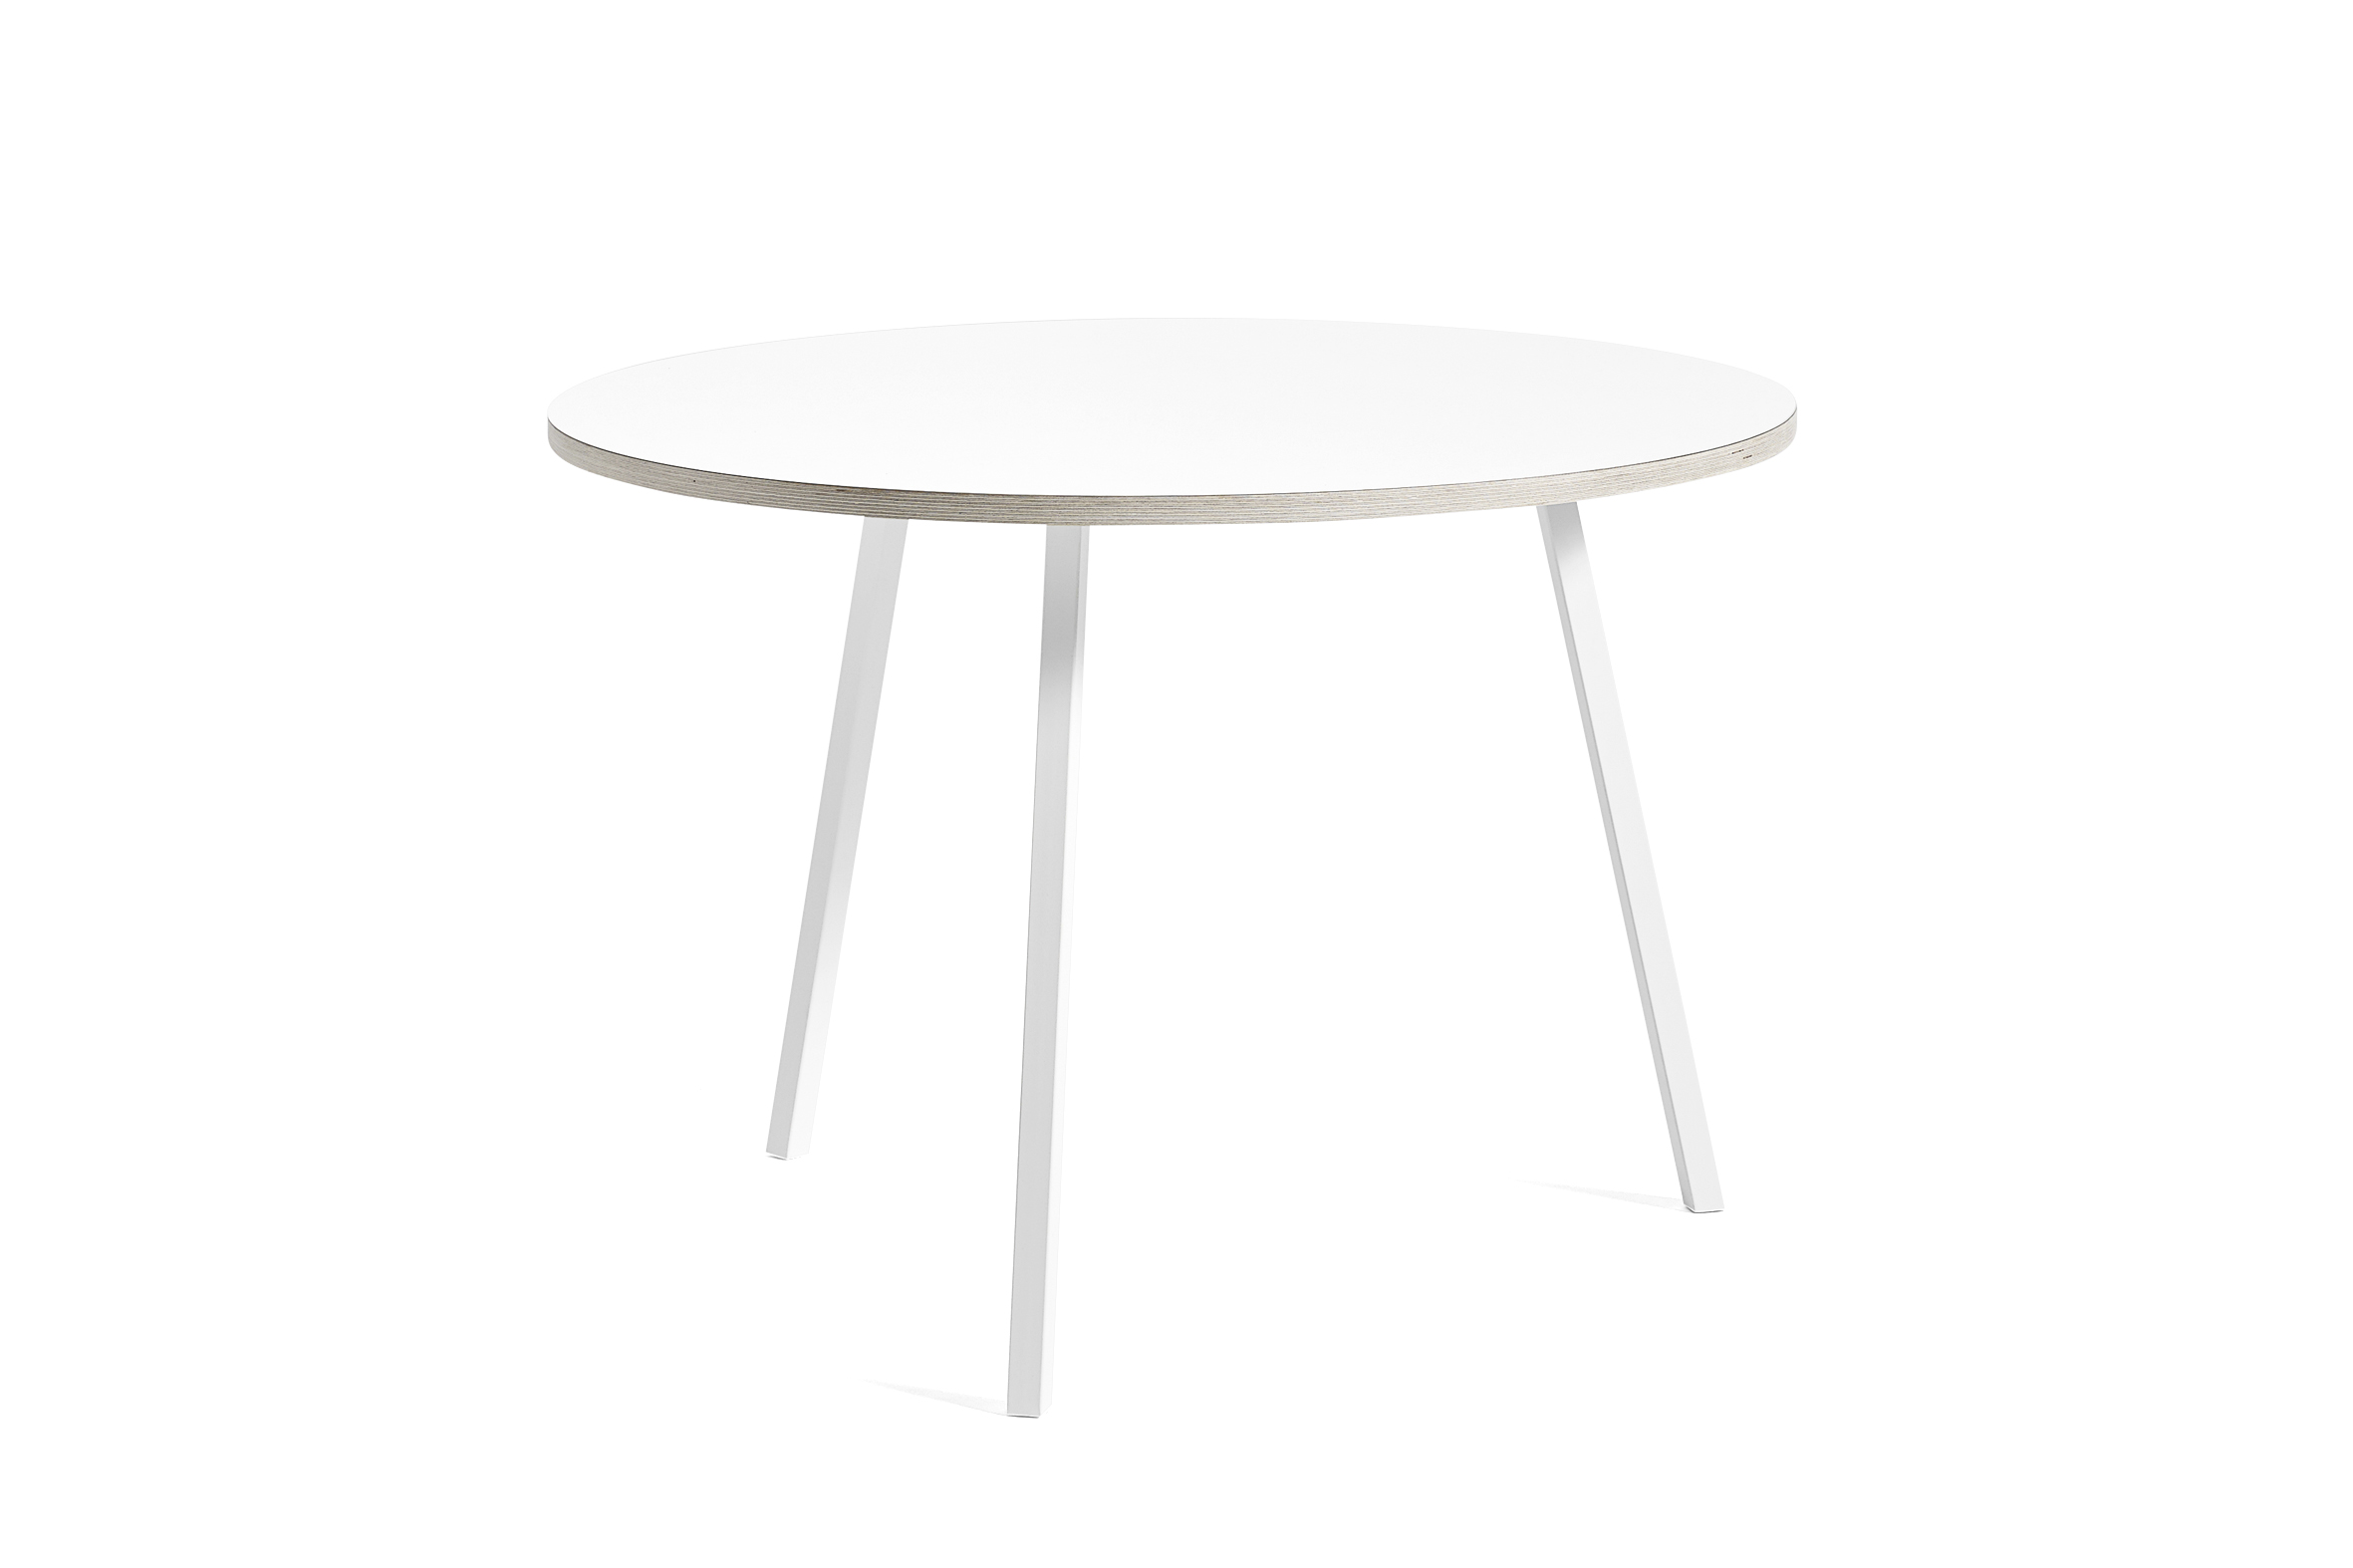 Loop stand round table white laminate 105 cm